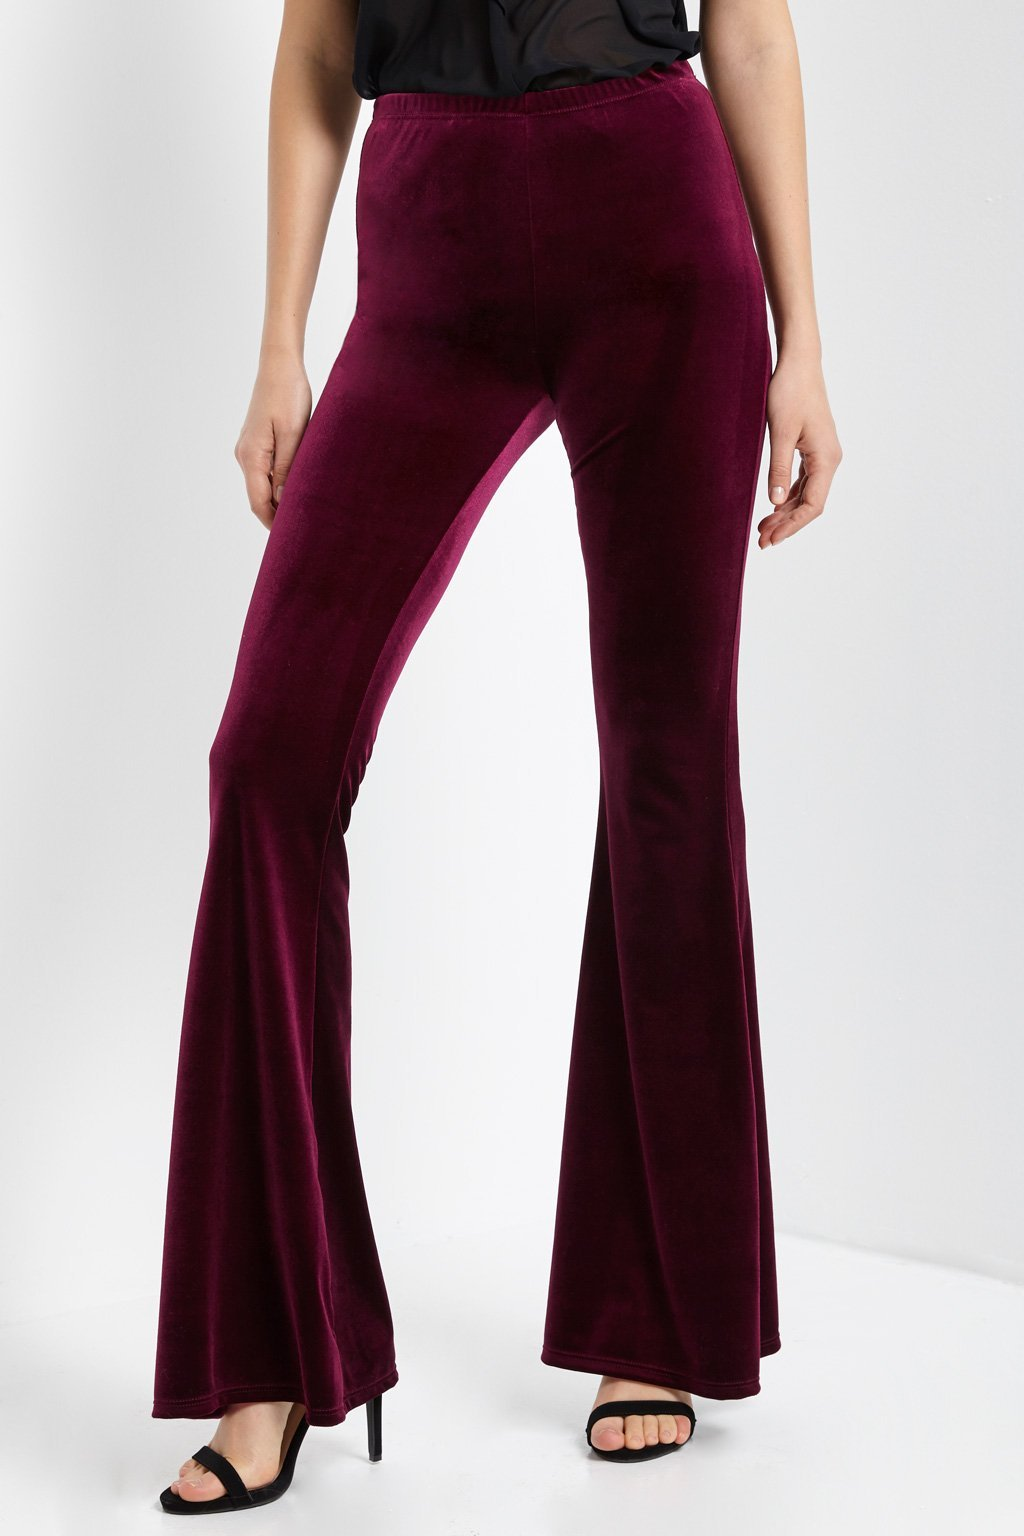 Poshsquare Pants Velvet High Waisted Bell Bottom Pants